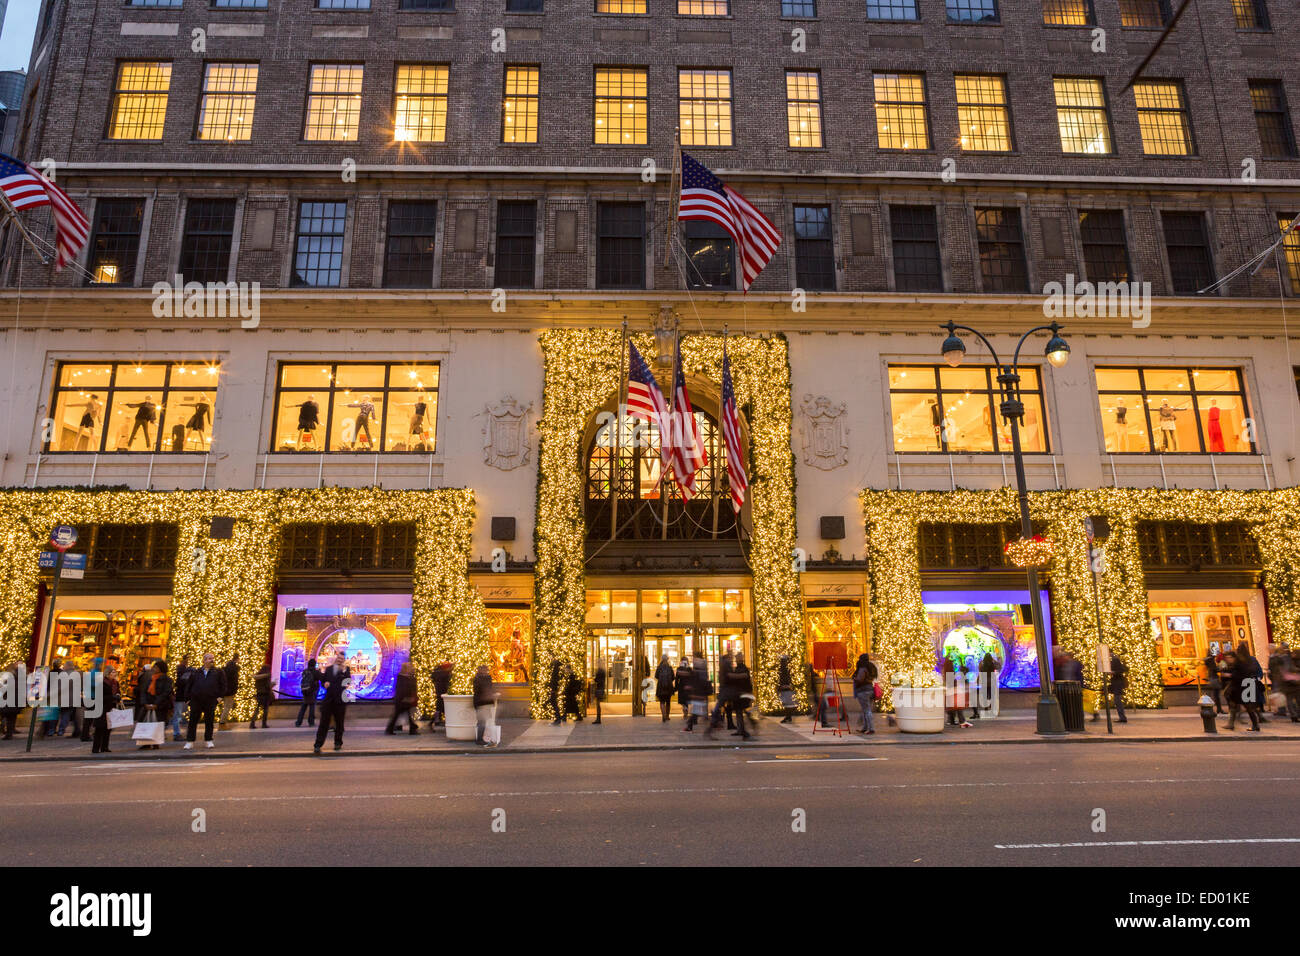 BI PRIME: Department stores Saks Fifth Avenue, Saks Off 5th, and Lord & Taylor — all of which are owned by The Hudson's Bay Company — were hit with a data breach at several locations in.